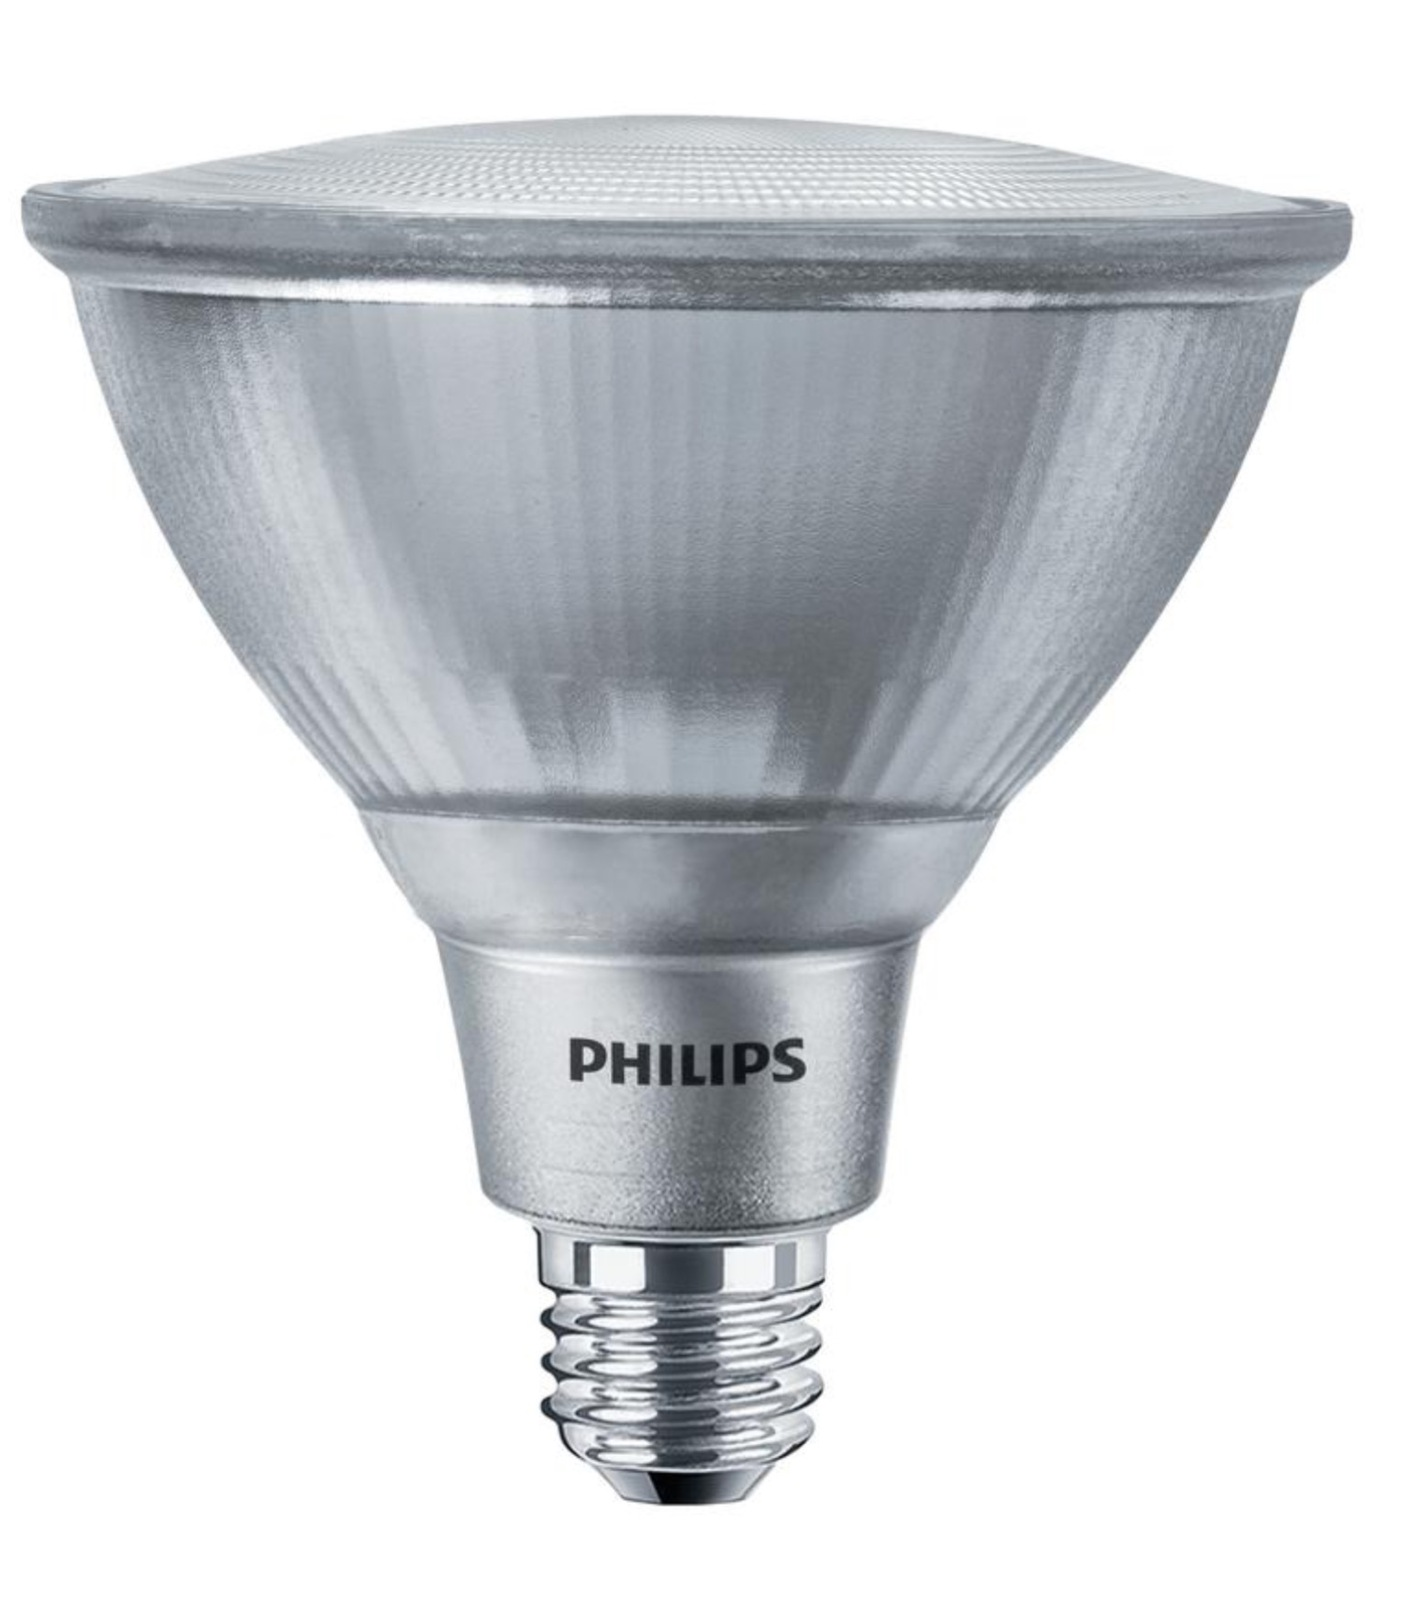 4 bulbs philips led 120w equivalent daylight 5000k par38 dimmable classic glass light bulbs. Black Bedroom Furniture Sets. Home Design Ideas